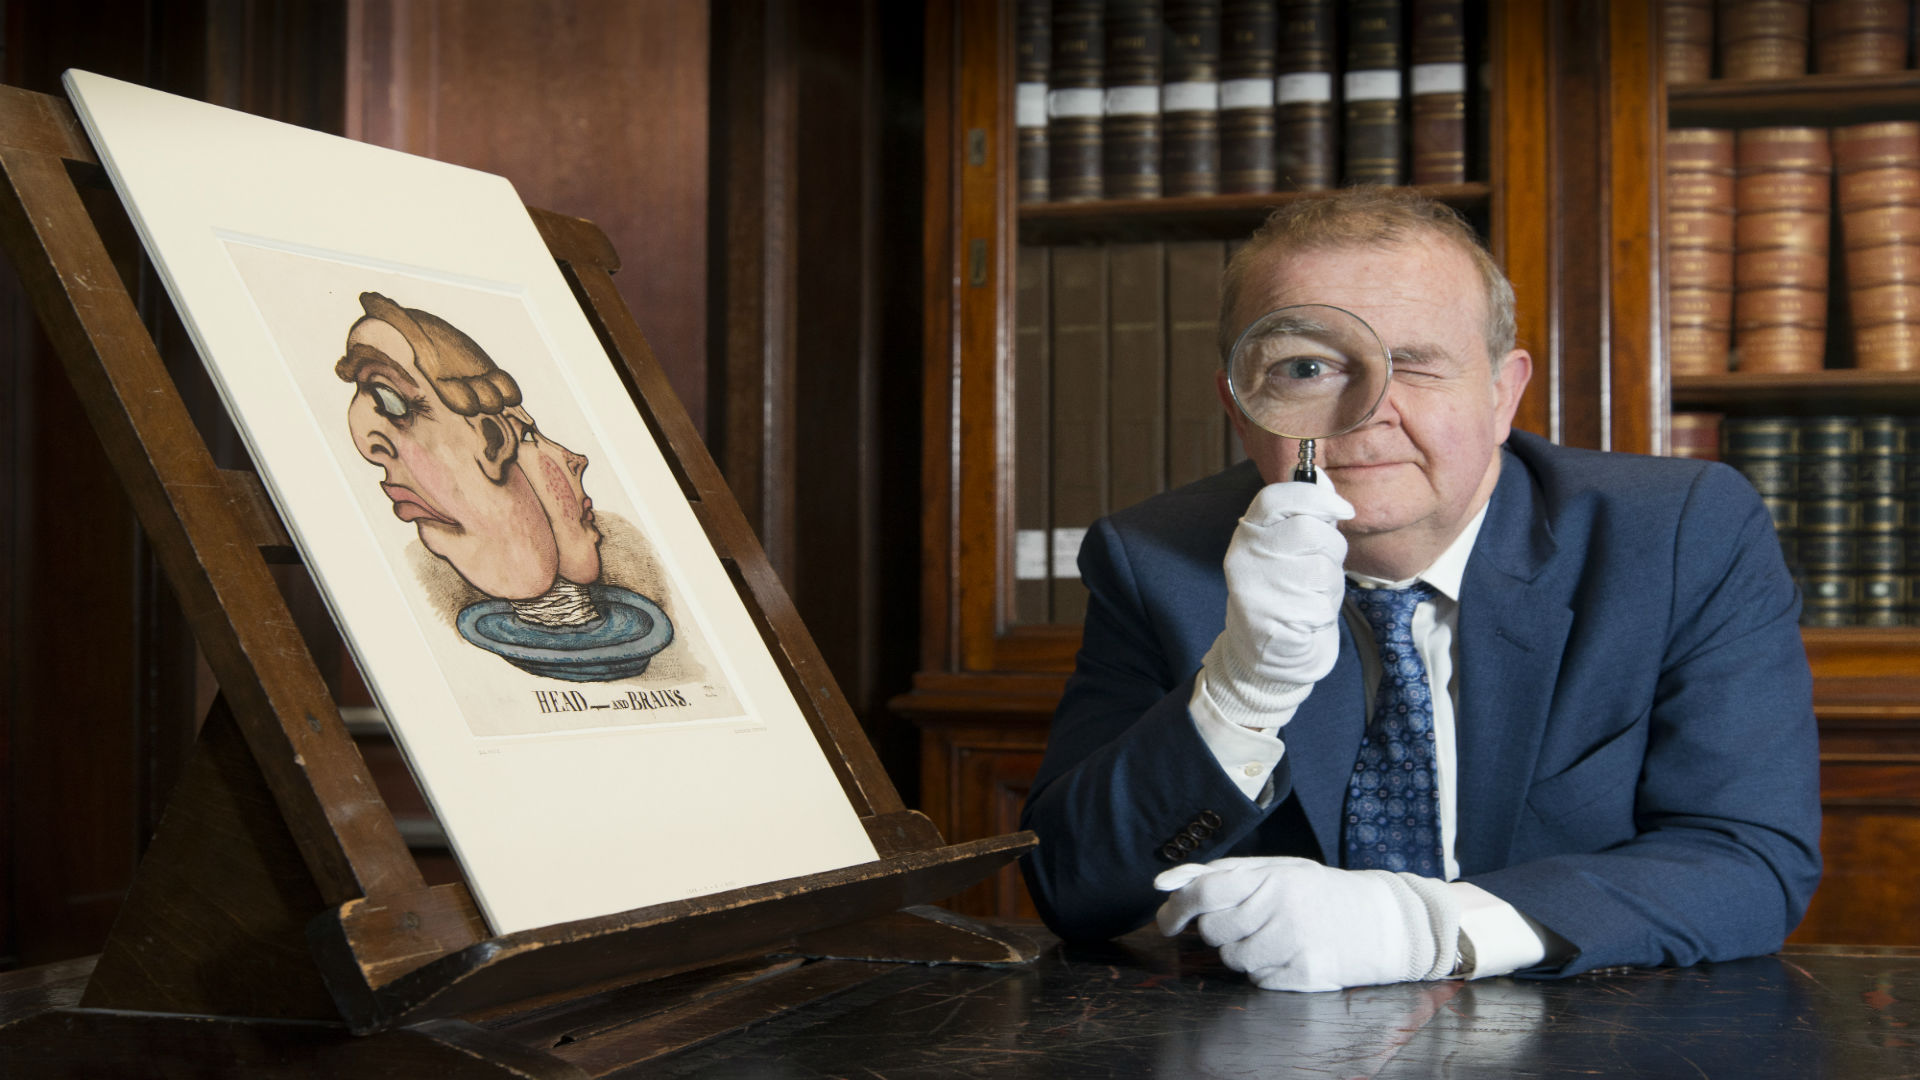 Ian Hislop at the British Museum searching for objects for the Citi exhibition - I Object at the British Museum